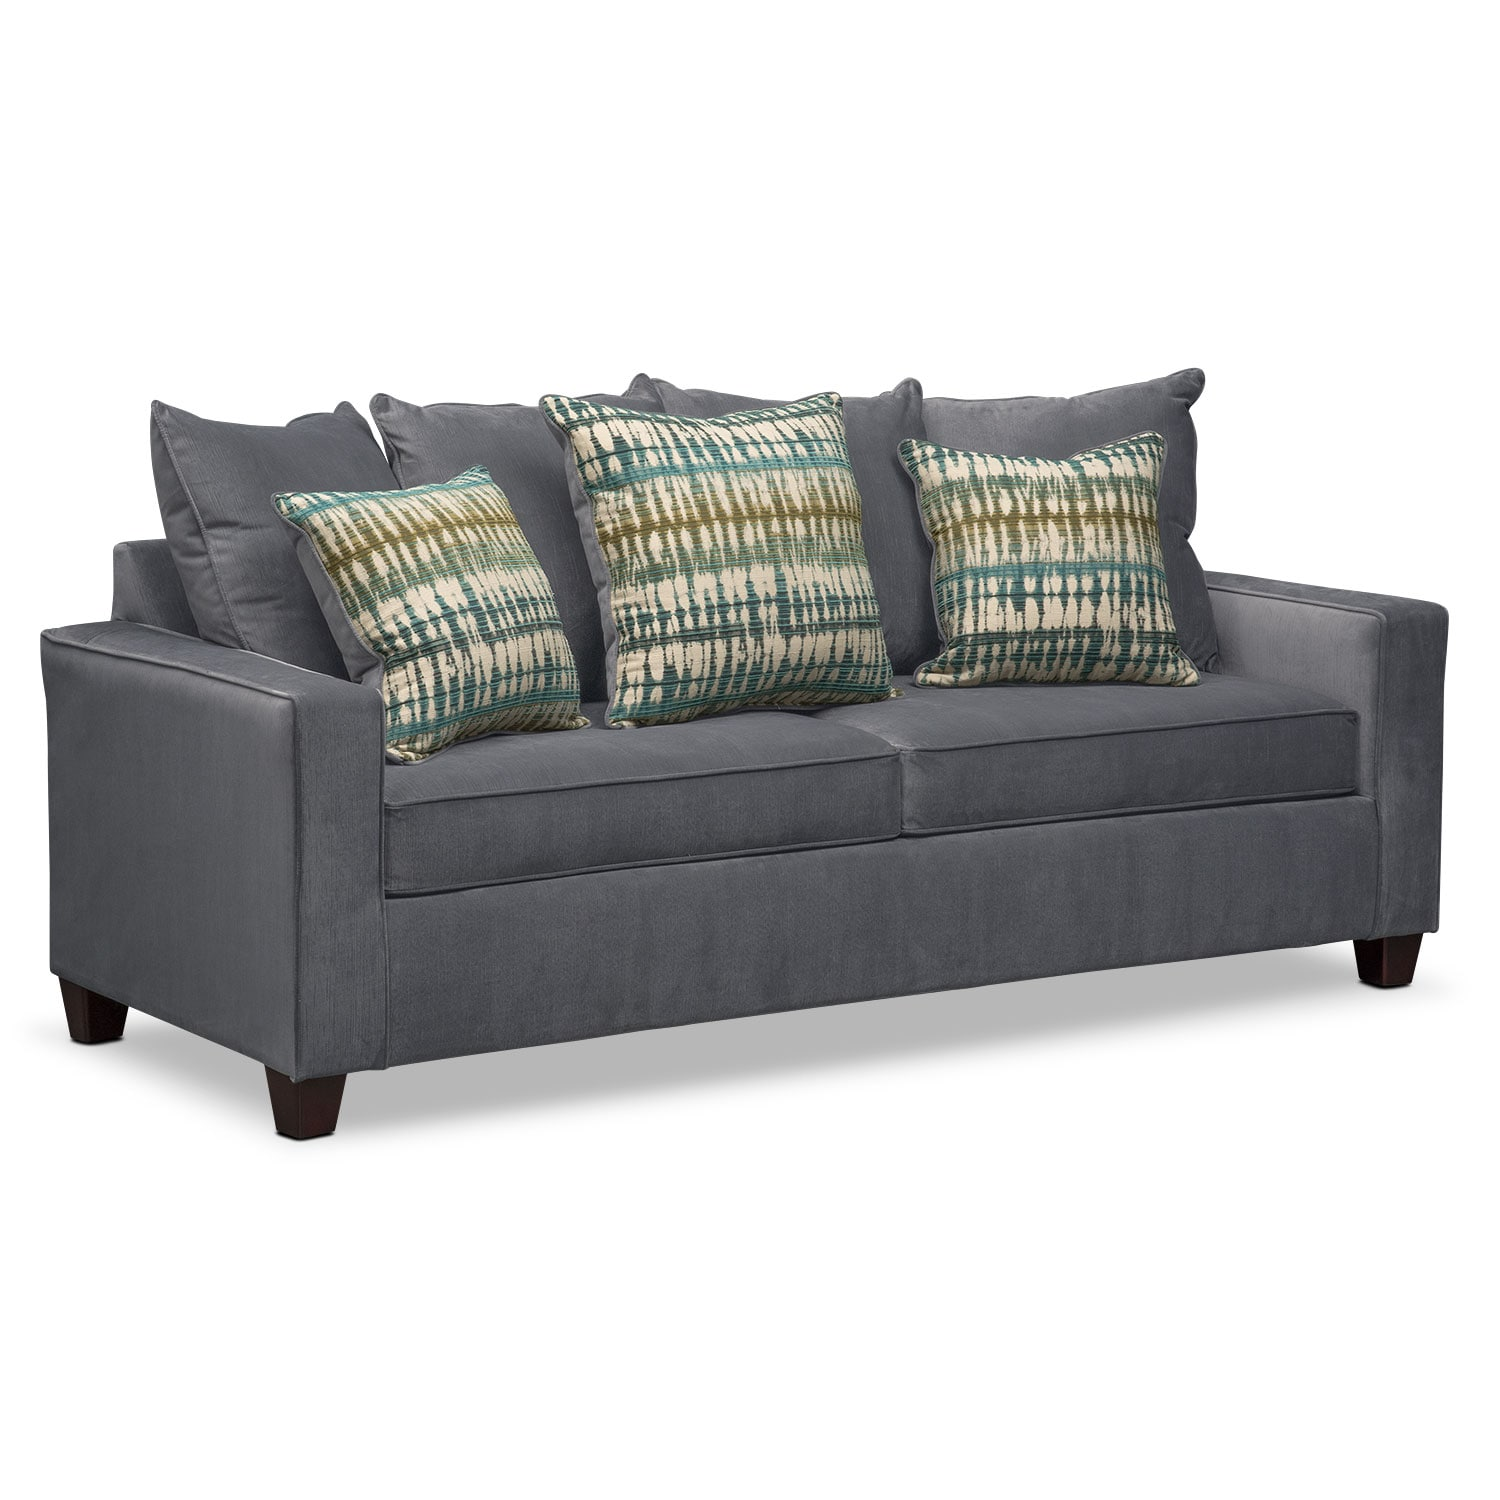 Bryden Queen Memory Foam Sleeper Sofa - Slate - Bryden Queen Memory Foam Sleeper Sofa - Slate Value City Furniture